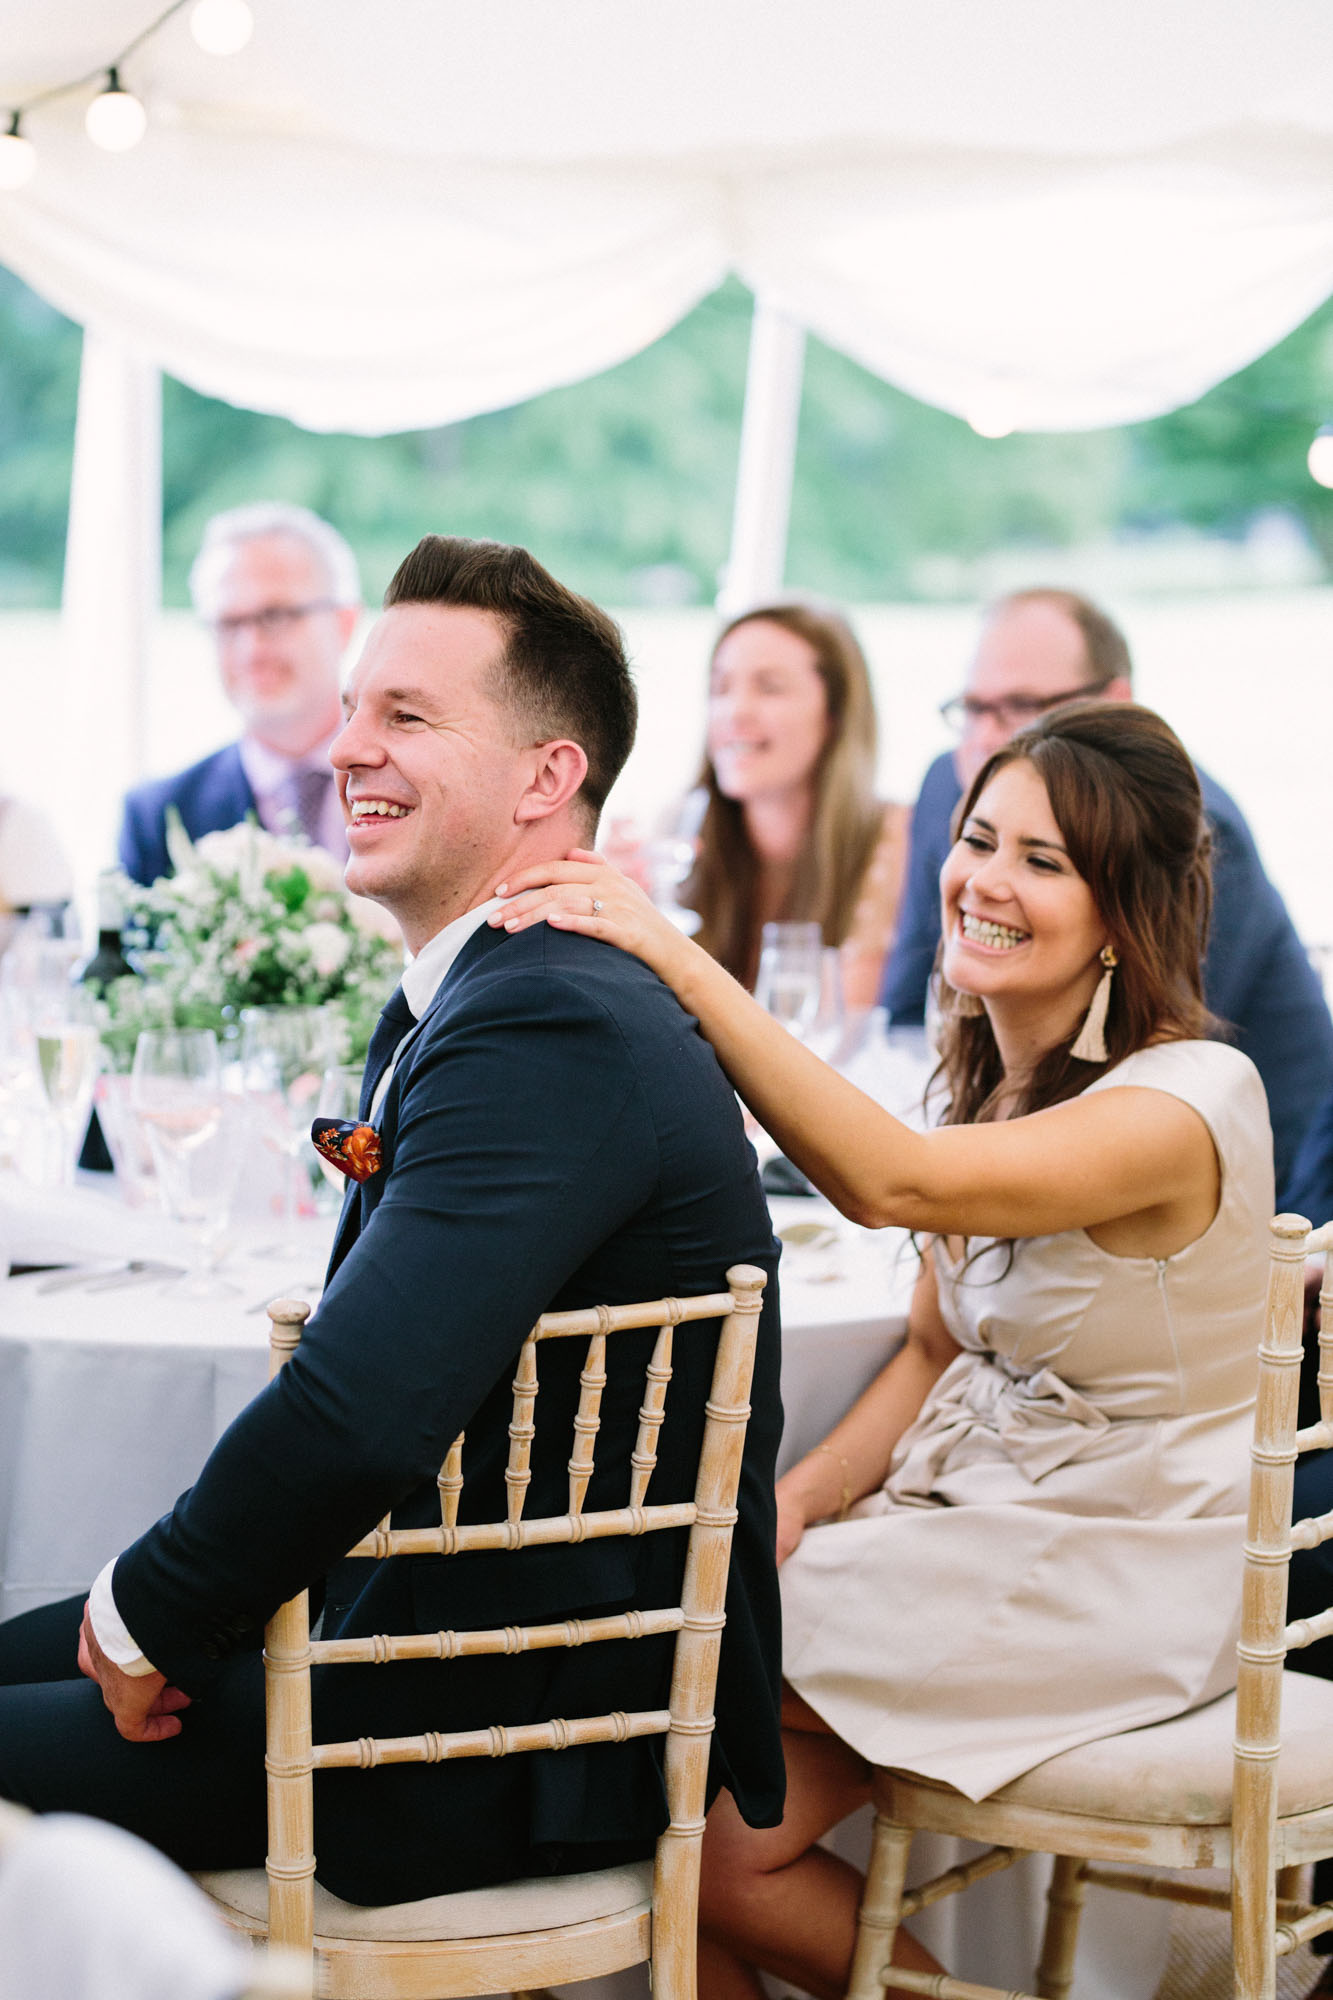 Wedding guests enjoying speeches on wedding day at Stansted House